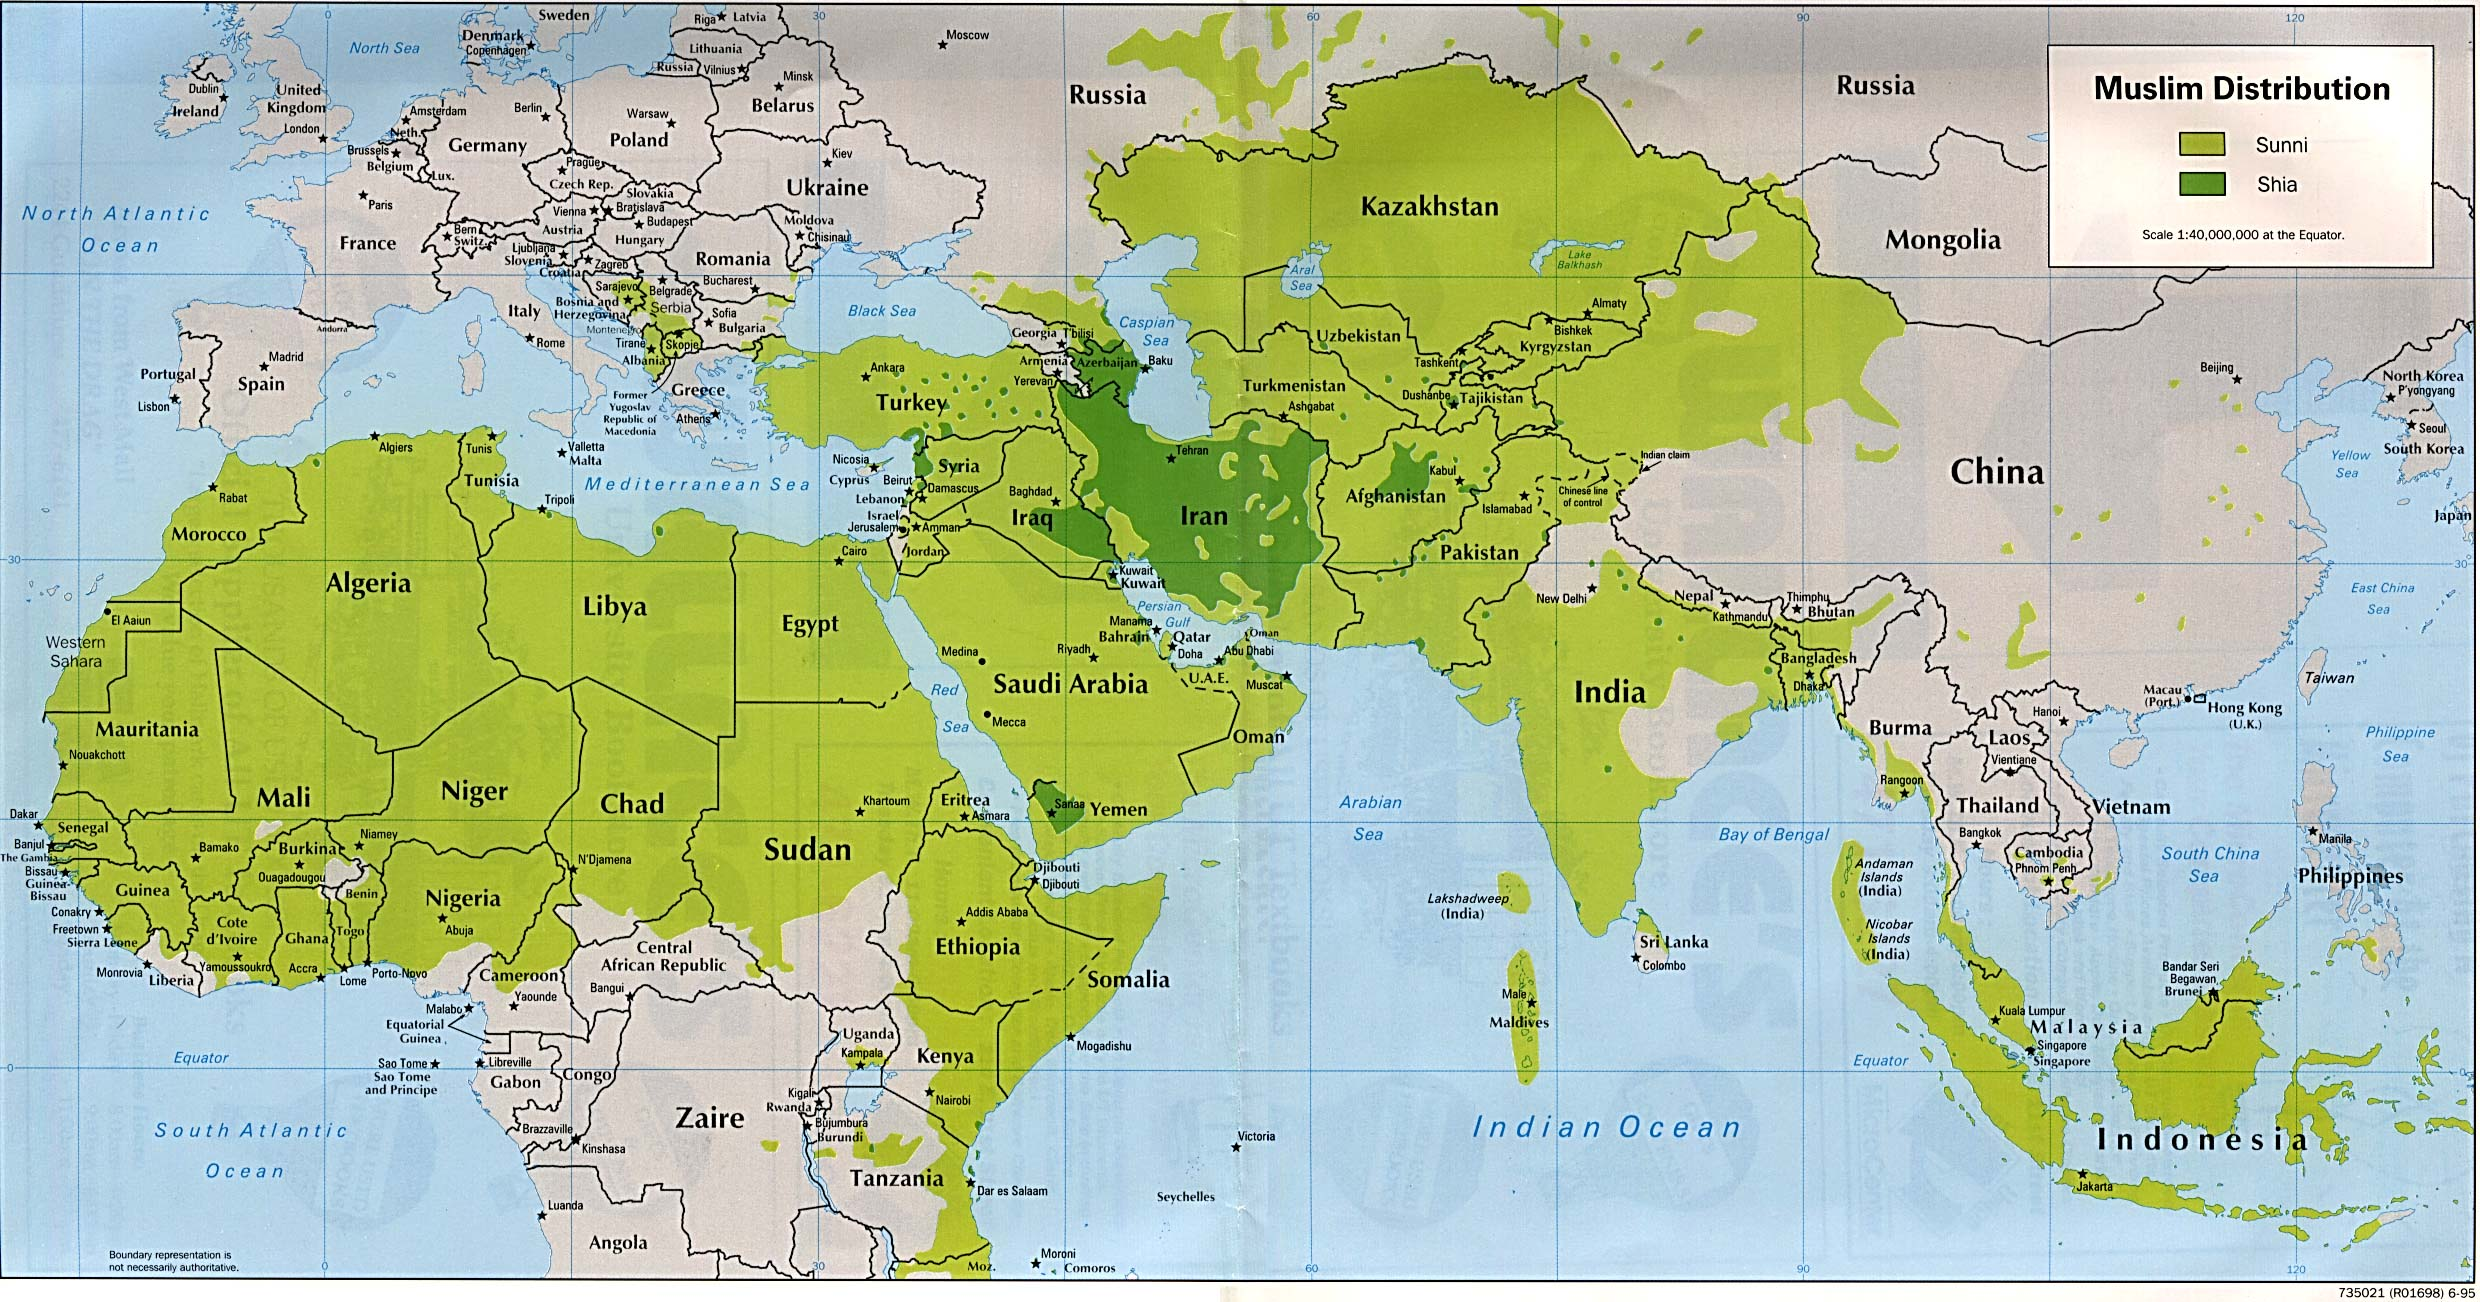 Muslim_Distribution_map